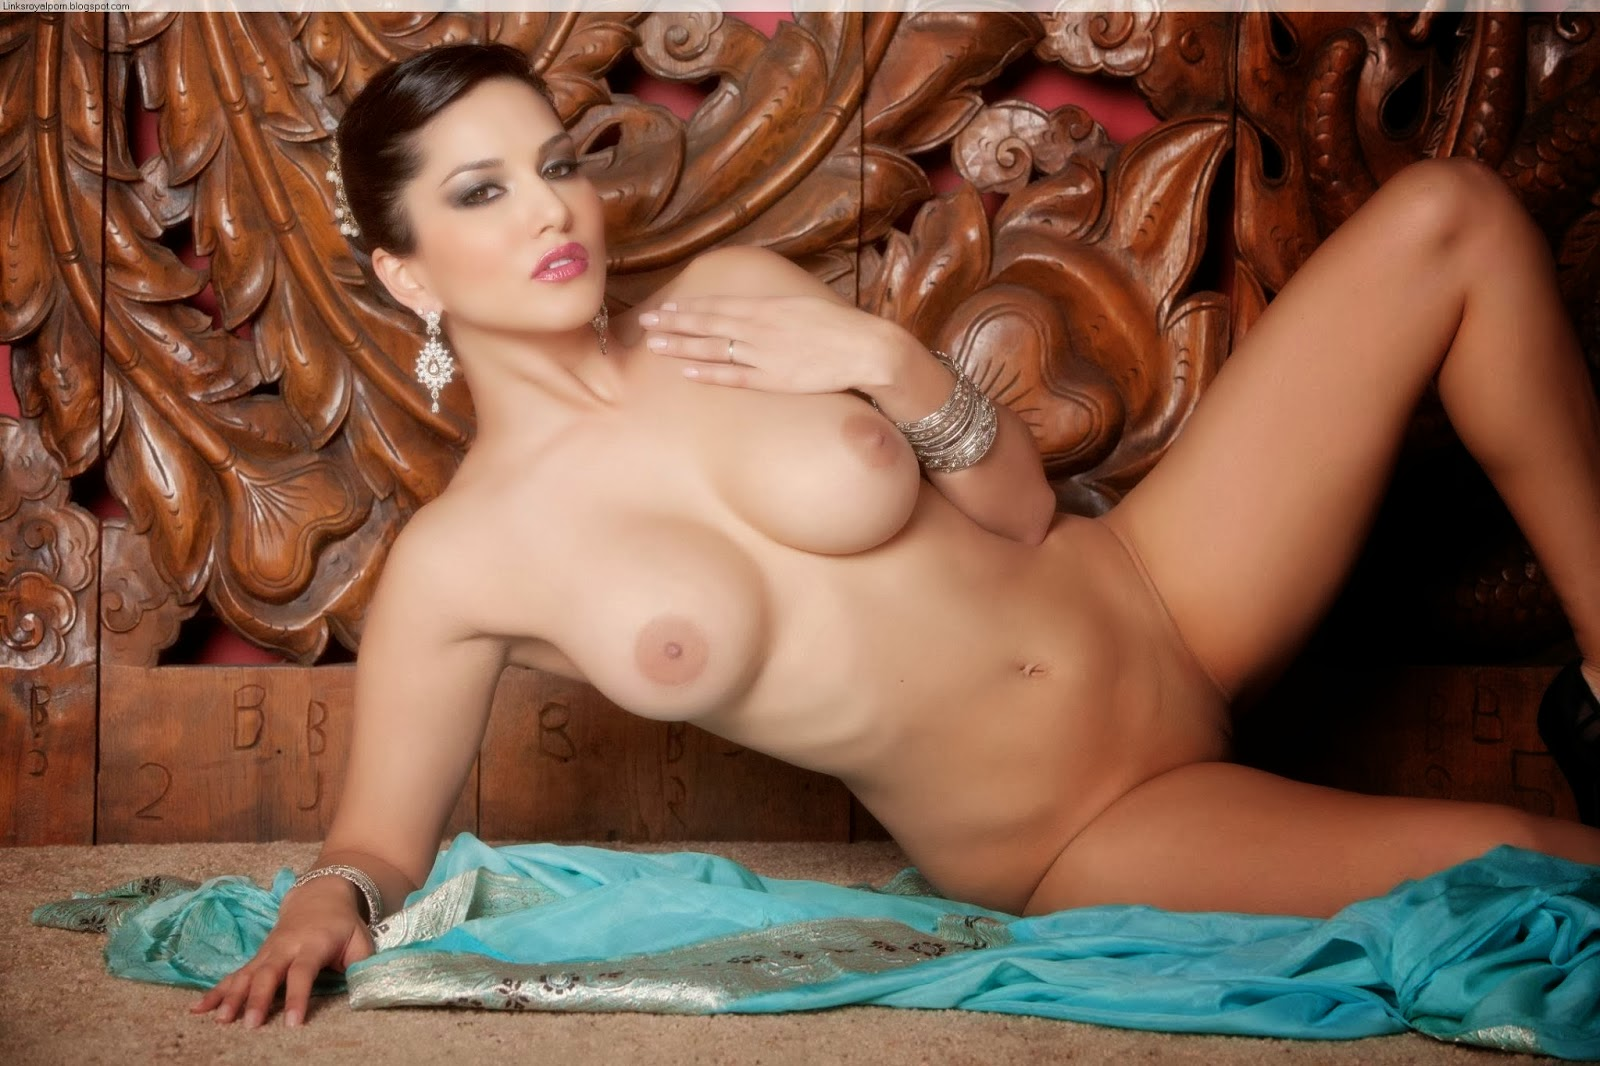 More Nude Hot Sey Pics Don T Miss